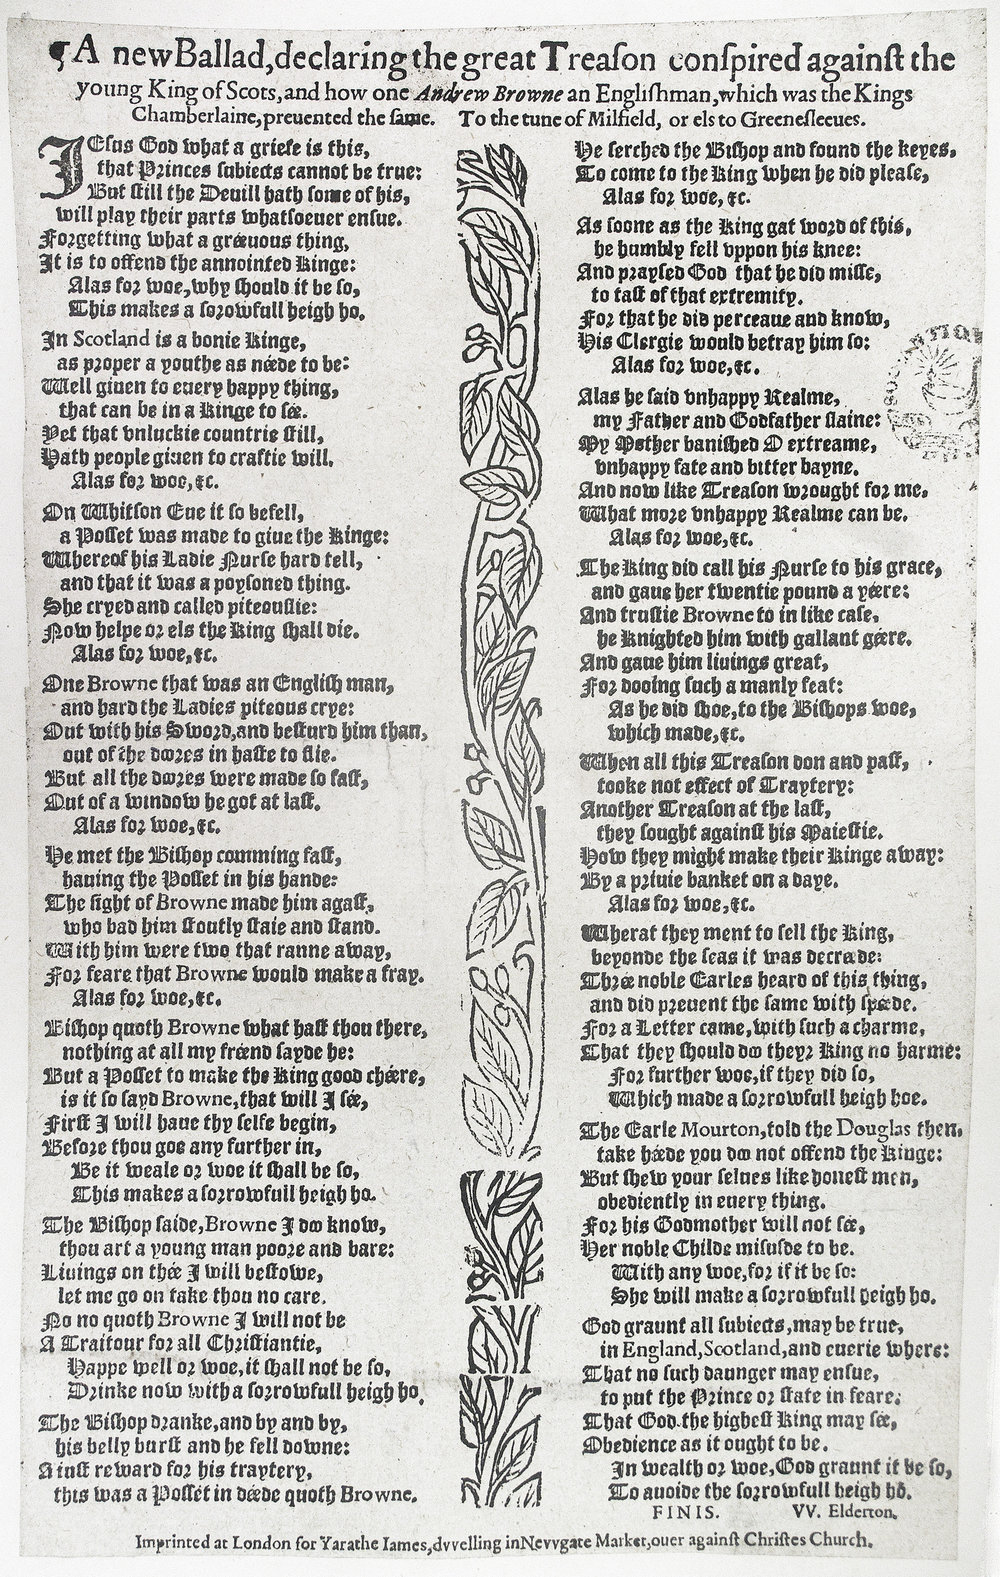 """Fig. 3.  W. Elderton, """"A new ballad …"""" registered 30 May 1581. Reproduced by permission of the Society of Antiquaries of London."""